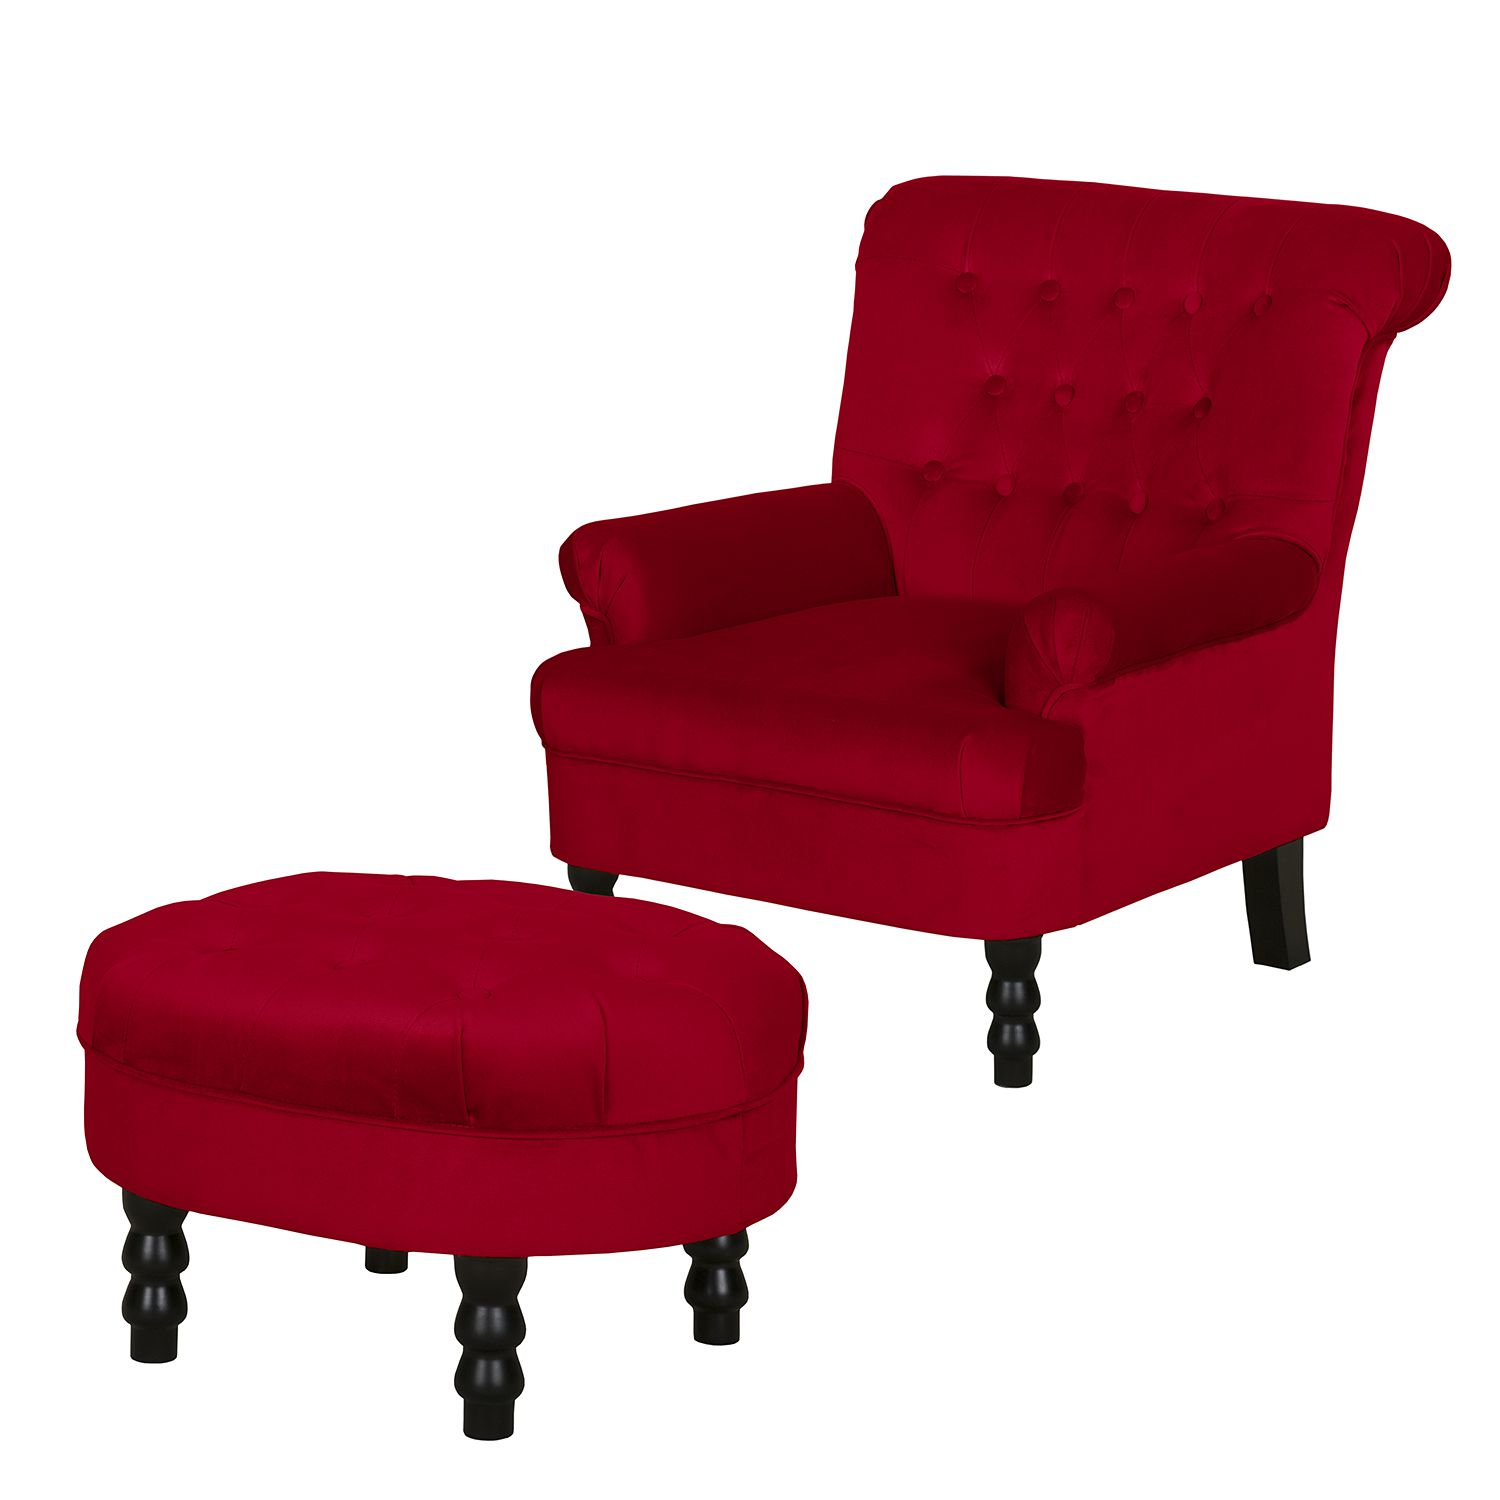 Fauteuil New Mill - Microfibre - Avec repose-pieds - Rouge rubis, Jack and Alice